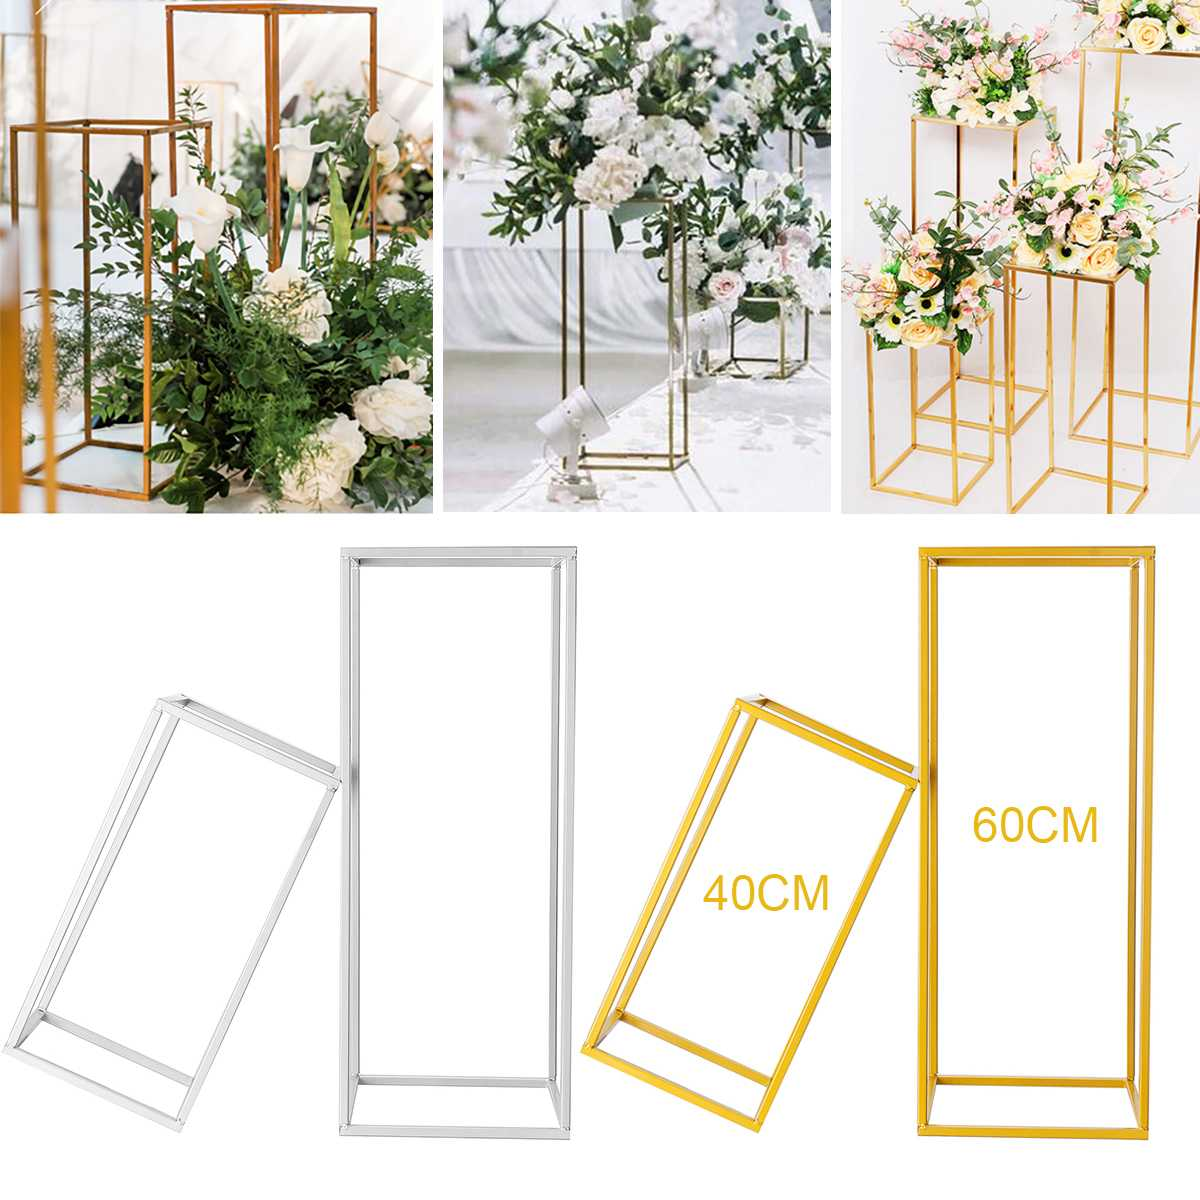 Vases Column Stand Rustproof Decoration Party Wedding Floor Geometric Holder Centerpiece Prop Iron Art Detachable Flower Rack